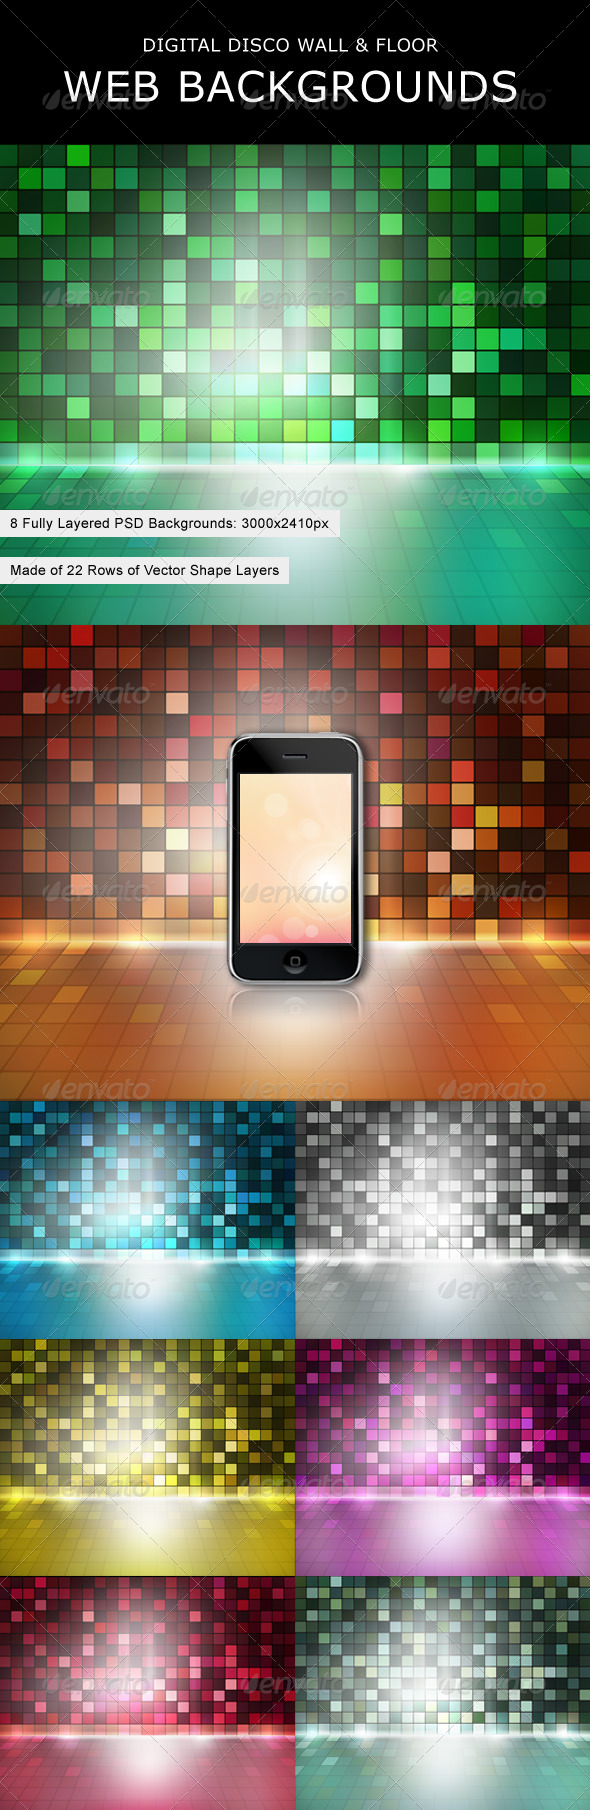 Digital Disco Wall & Floor Web Backgrounds - Backgrounds Graphics